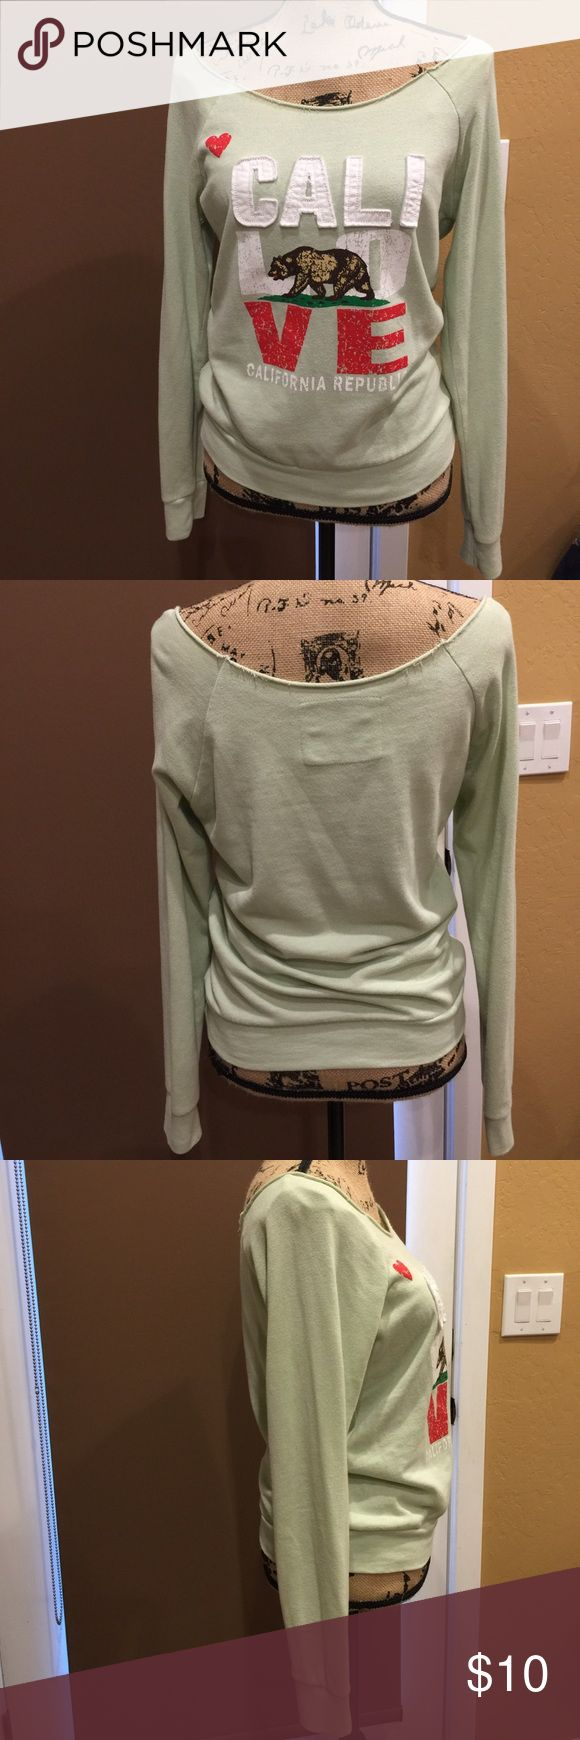 "Cali Love off the shoulder slouchy sweatshirt Cute mint green Cali Love Off the shoulder sweatshirt. This is a gently pre loved slouchy top. See pic very small blemish on sleeve & a couple of small areas ( front near letter E and on left sleeve with slight discoloration. Please make me an offer! 19"" from pit to pit. Not a thick cotton. It's super comfy too. Thank you!! Reflex Tops Sweatshirts & Hoodies"